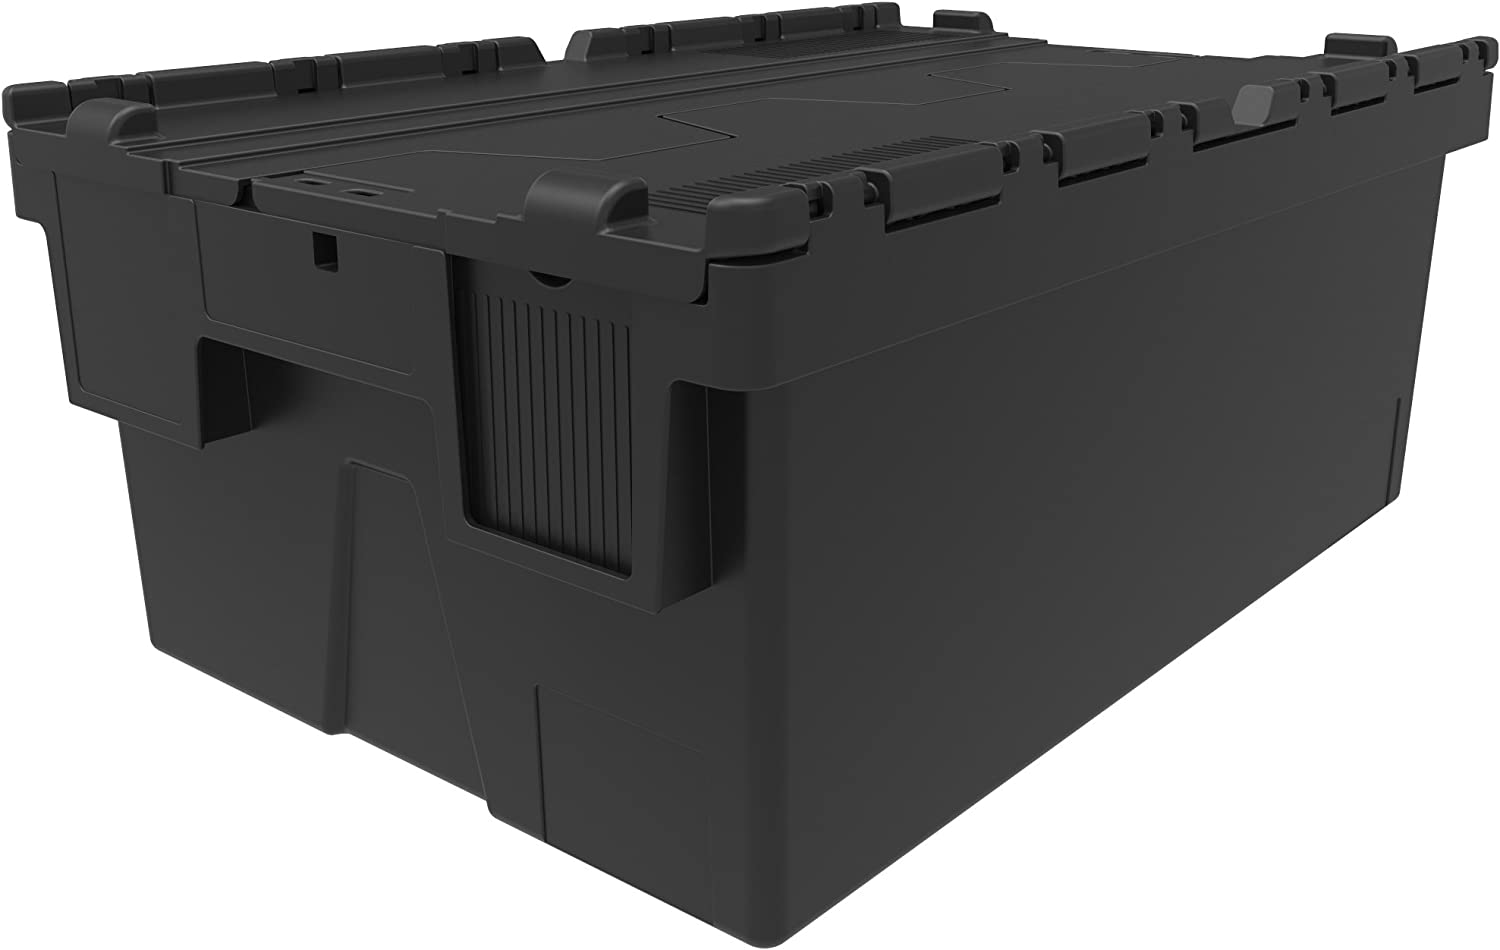 New Black 44 Litre Plastic Storage Boxes Containers Crates Totes with Lids 10 L 600 x W 400 x H 250 mm Industrial Stackable//Nest Box